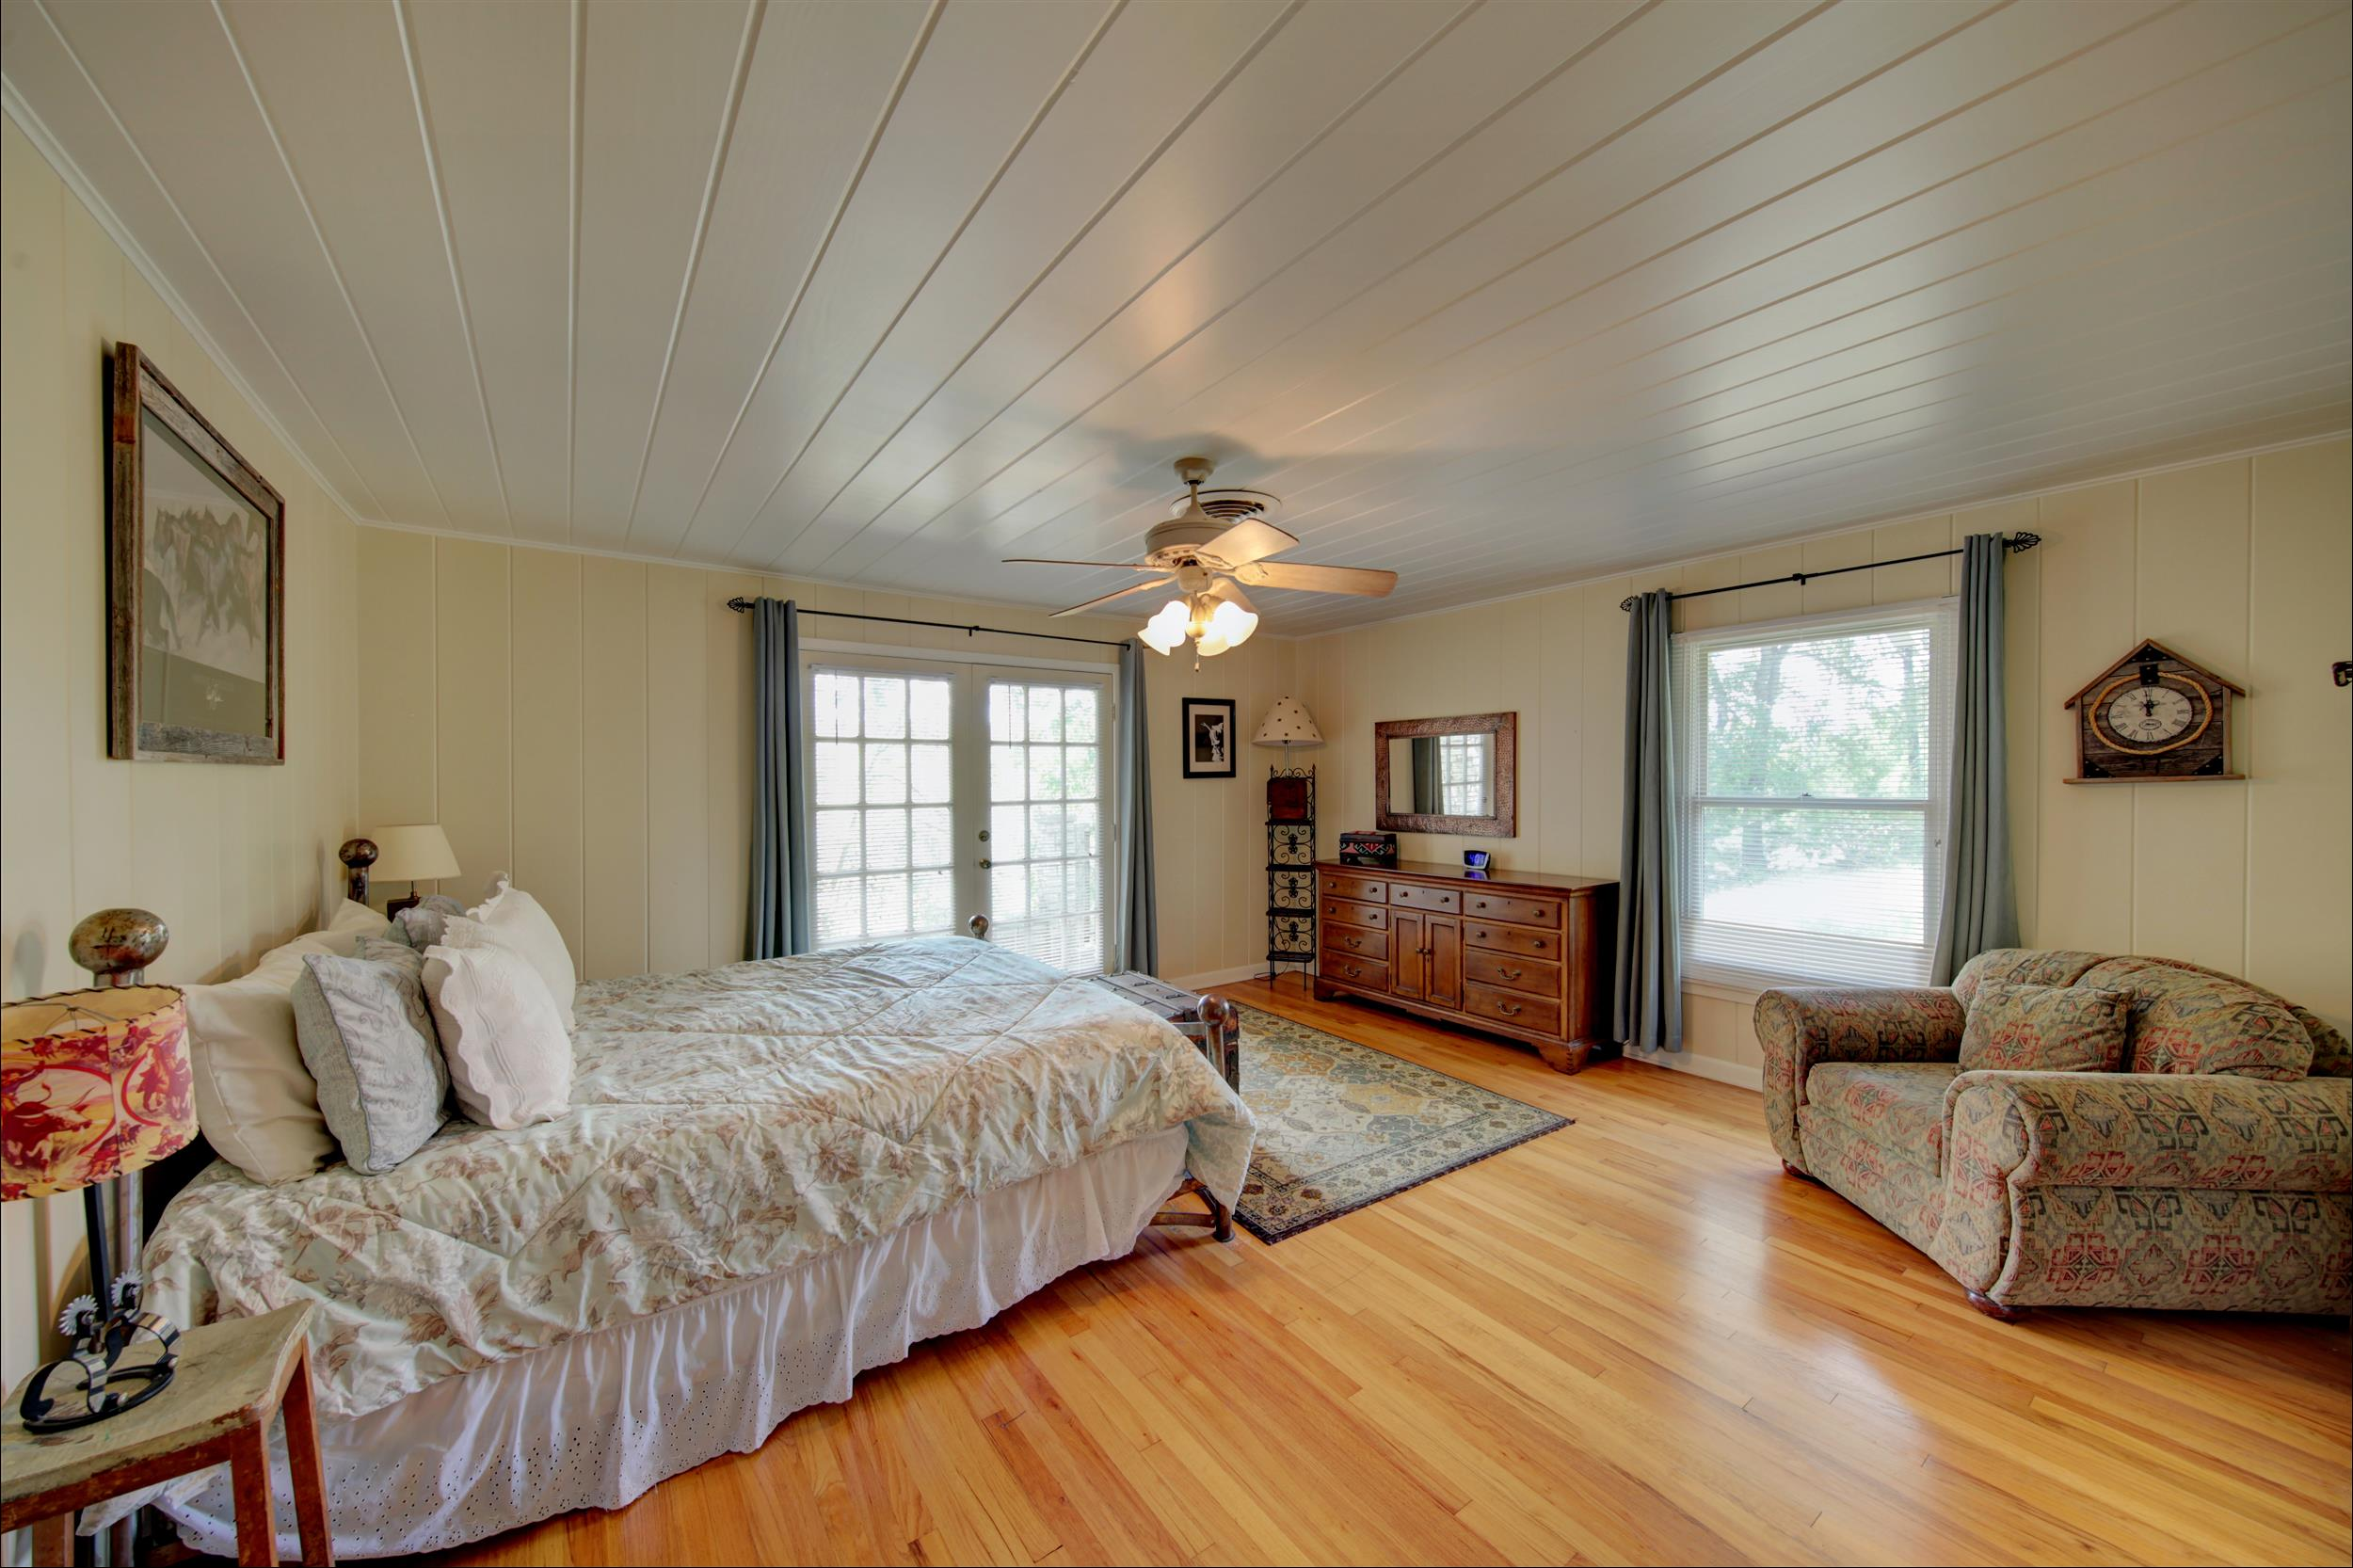 a bedroom with wood floors